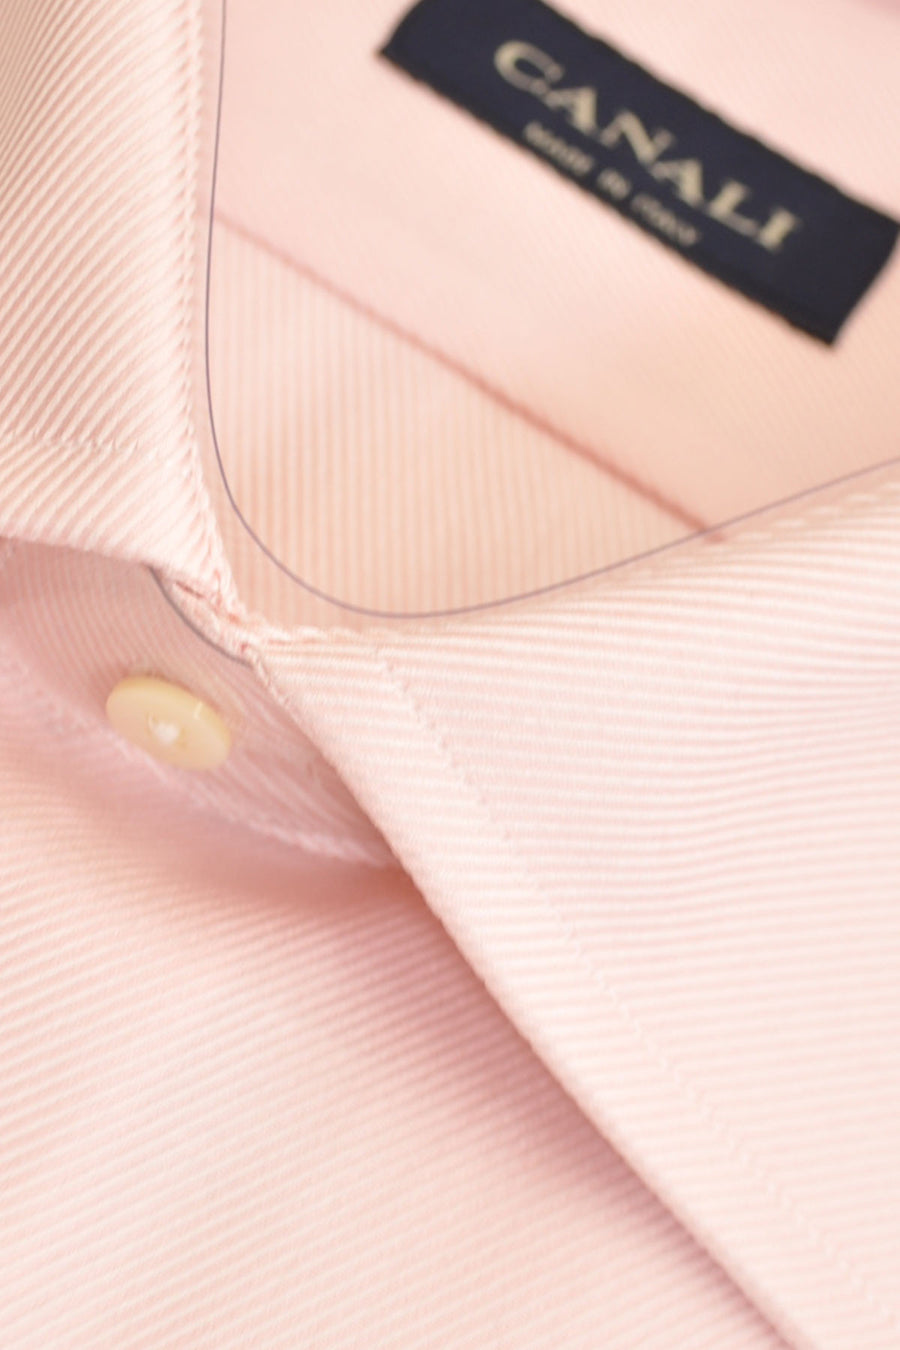 Canali Dress Shirt Solid Pink Stripes 44 - 17 1/2 SALE